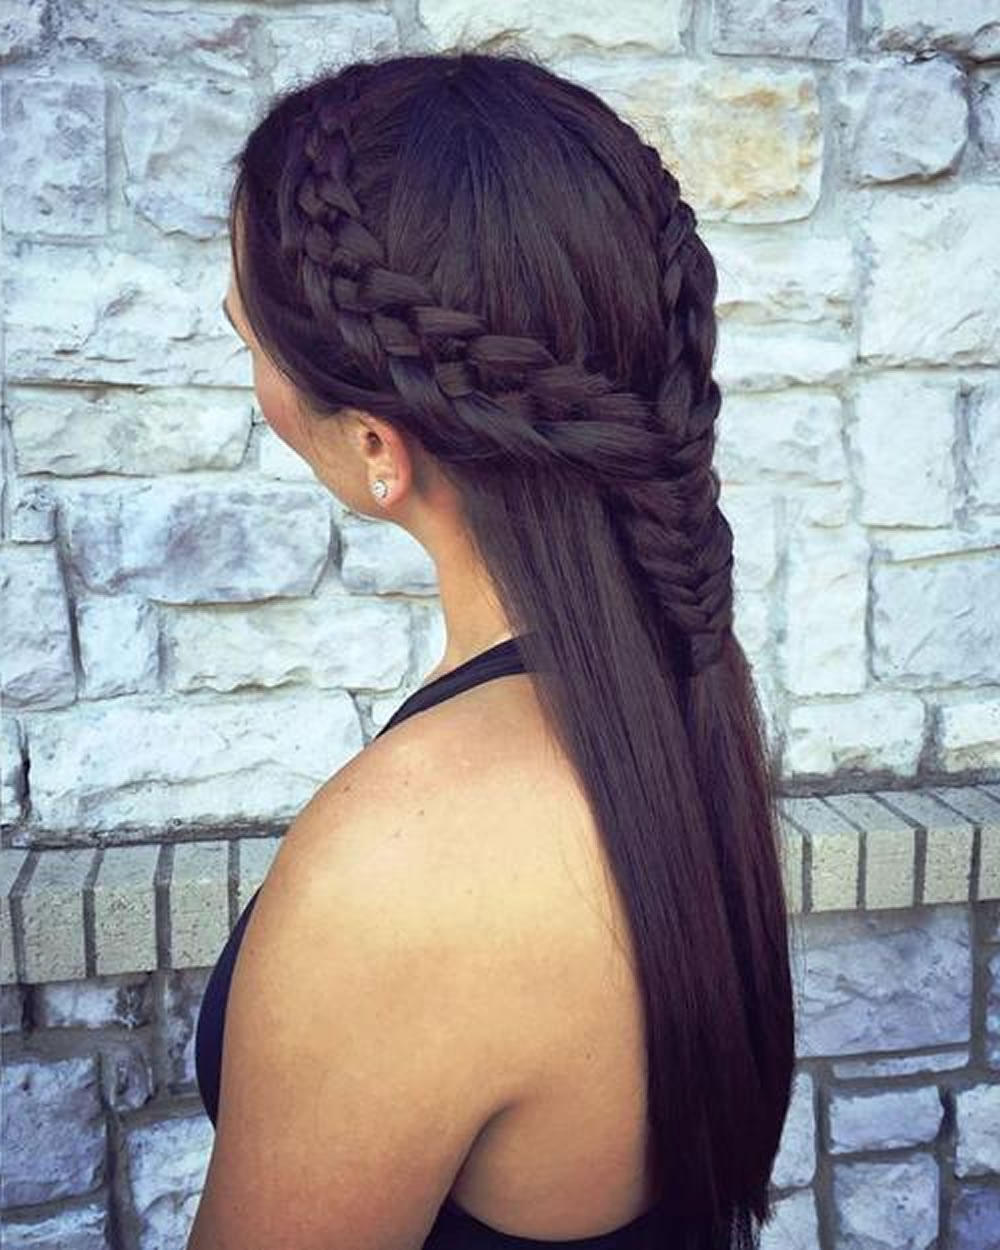 Best And Newest Double Half Up Mermaid Braid Hairstyles Inside French Braids 2018 (Mermaid, Half Up, Side, Fishtail Etc (View 20 of 20)